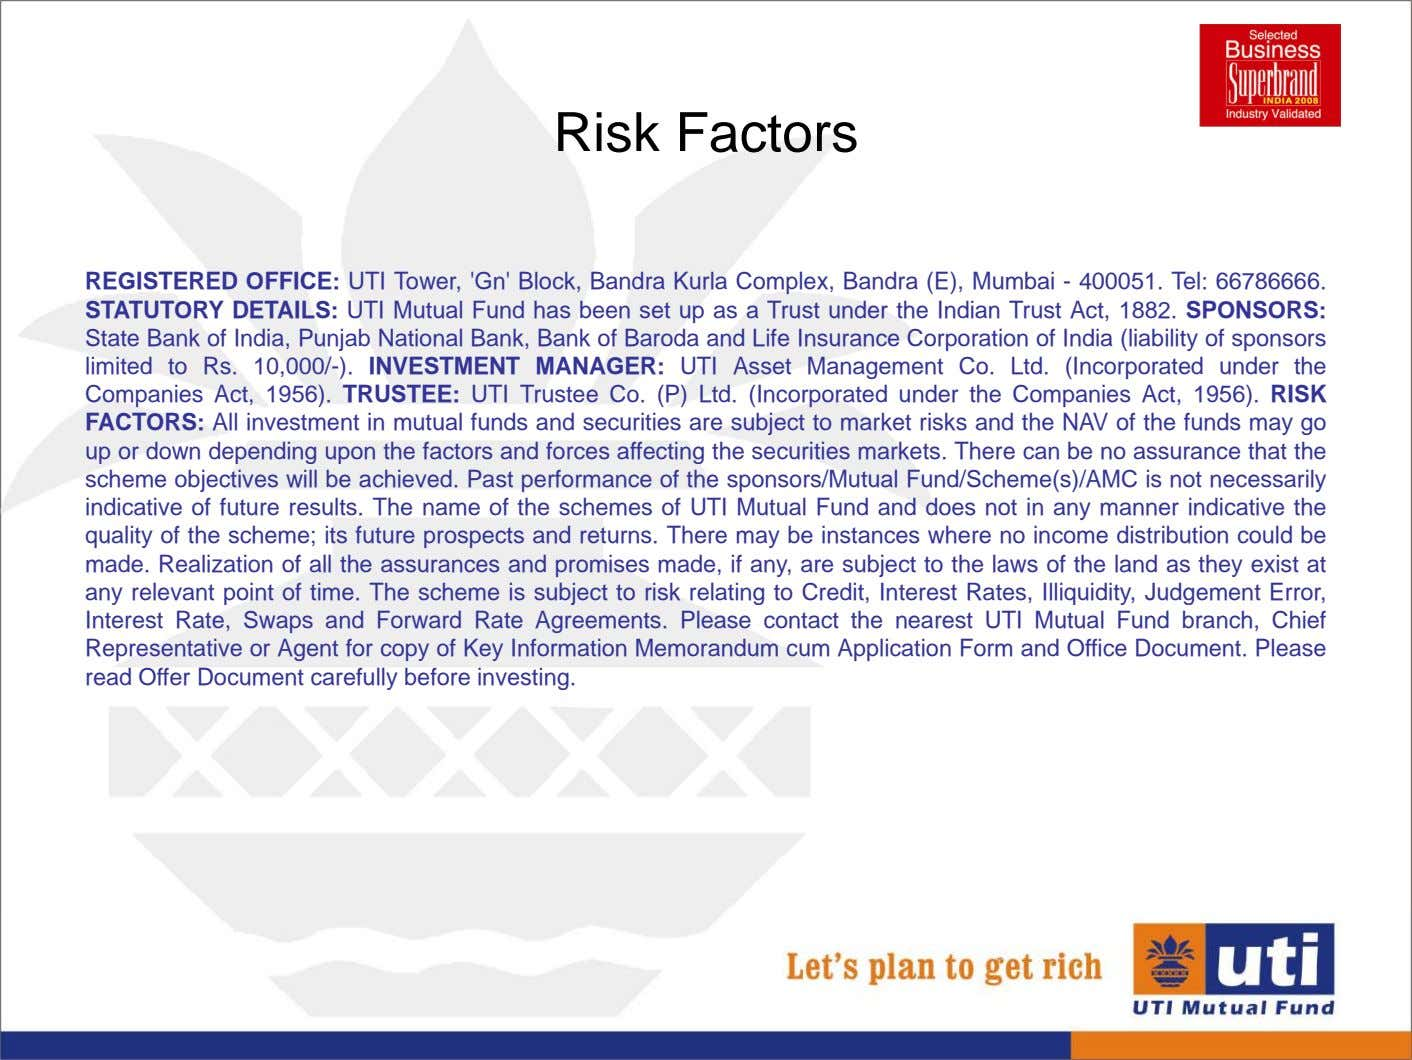 Risk Factors REGISTERED OFFICE: UTI Tower, 'Gn' Block, Bandra Kurla Complex, Bandra (E), Mumbai -